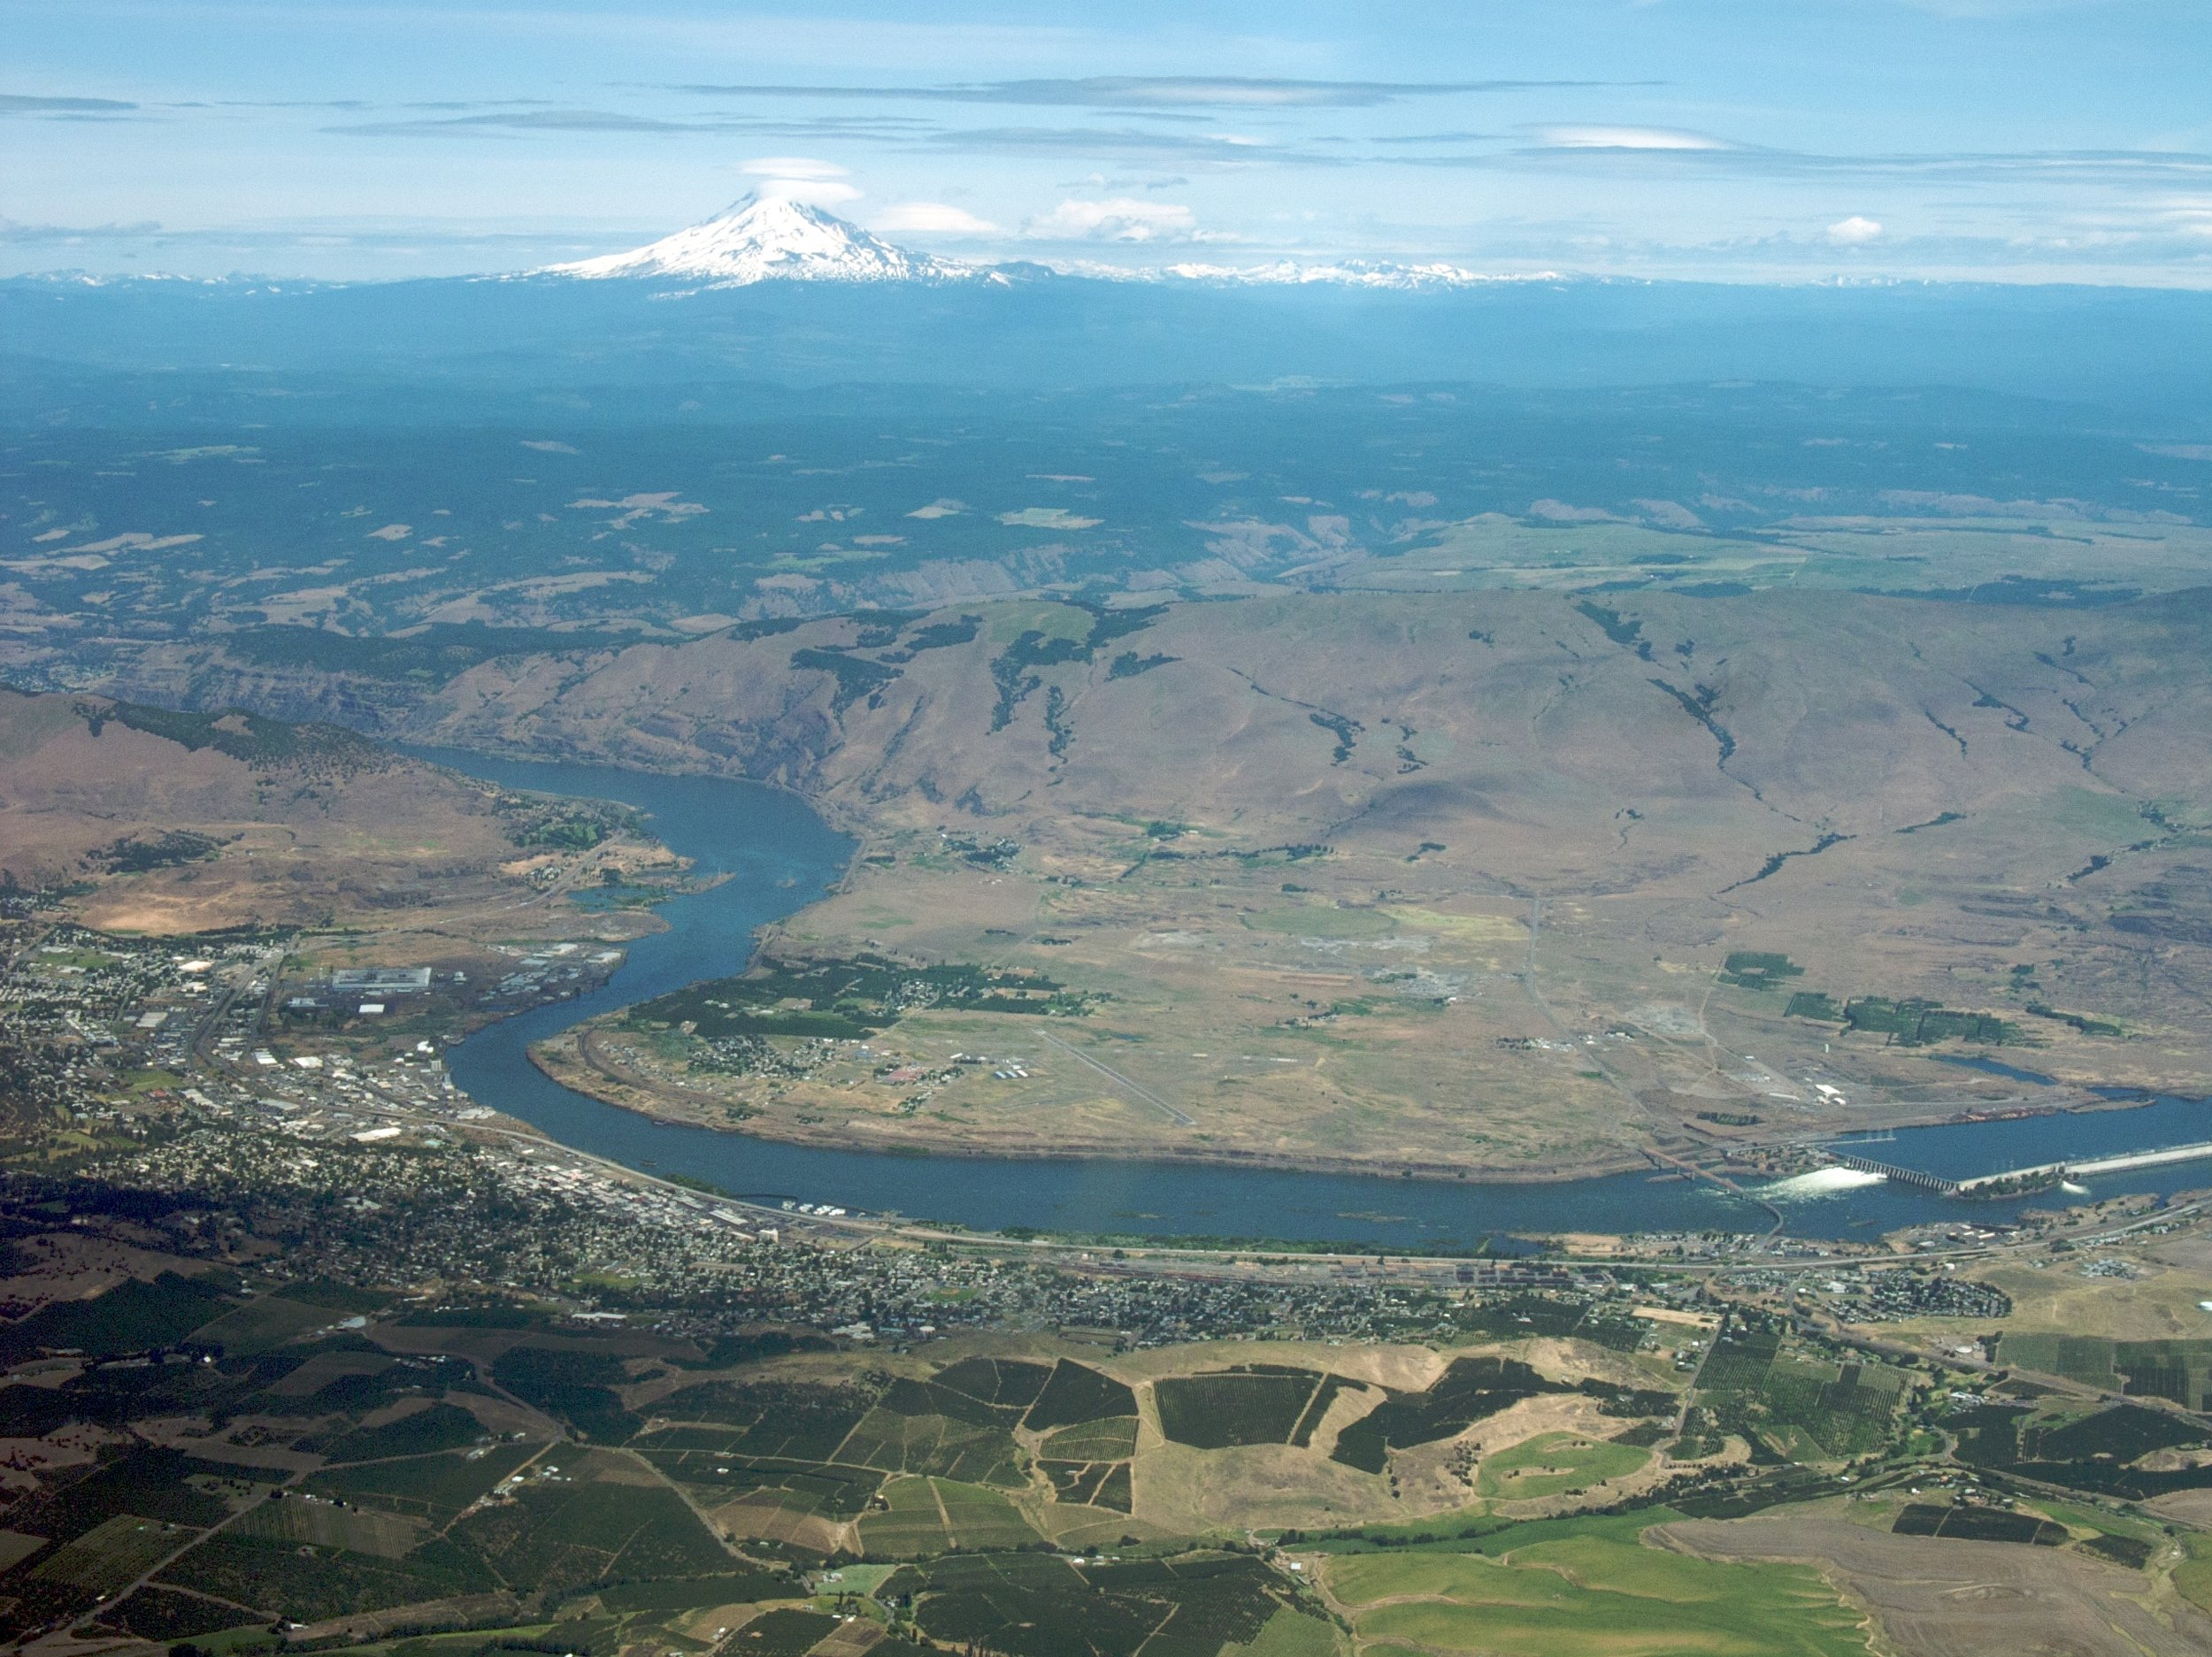 The Dalles, Oregon